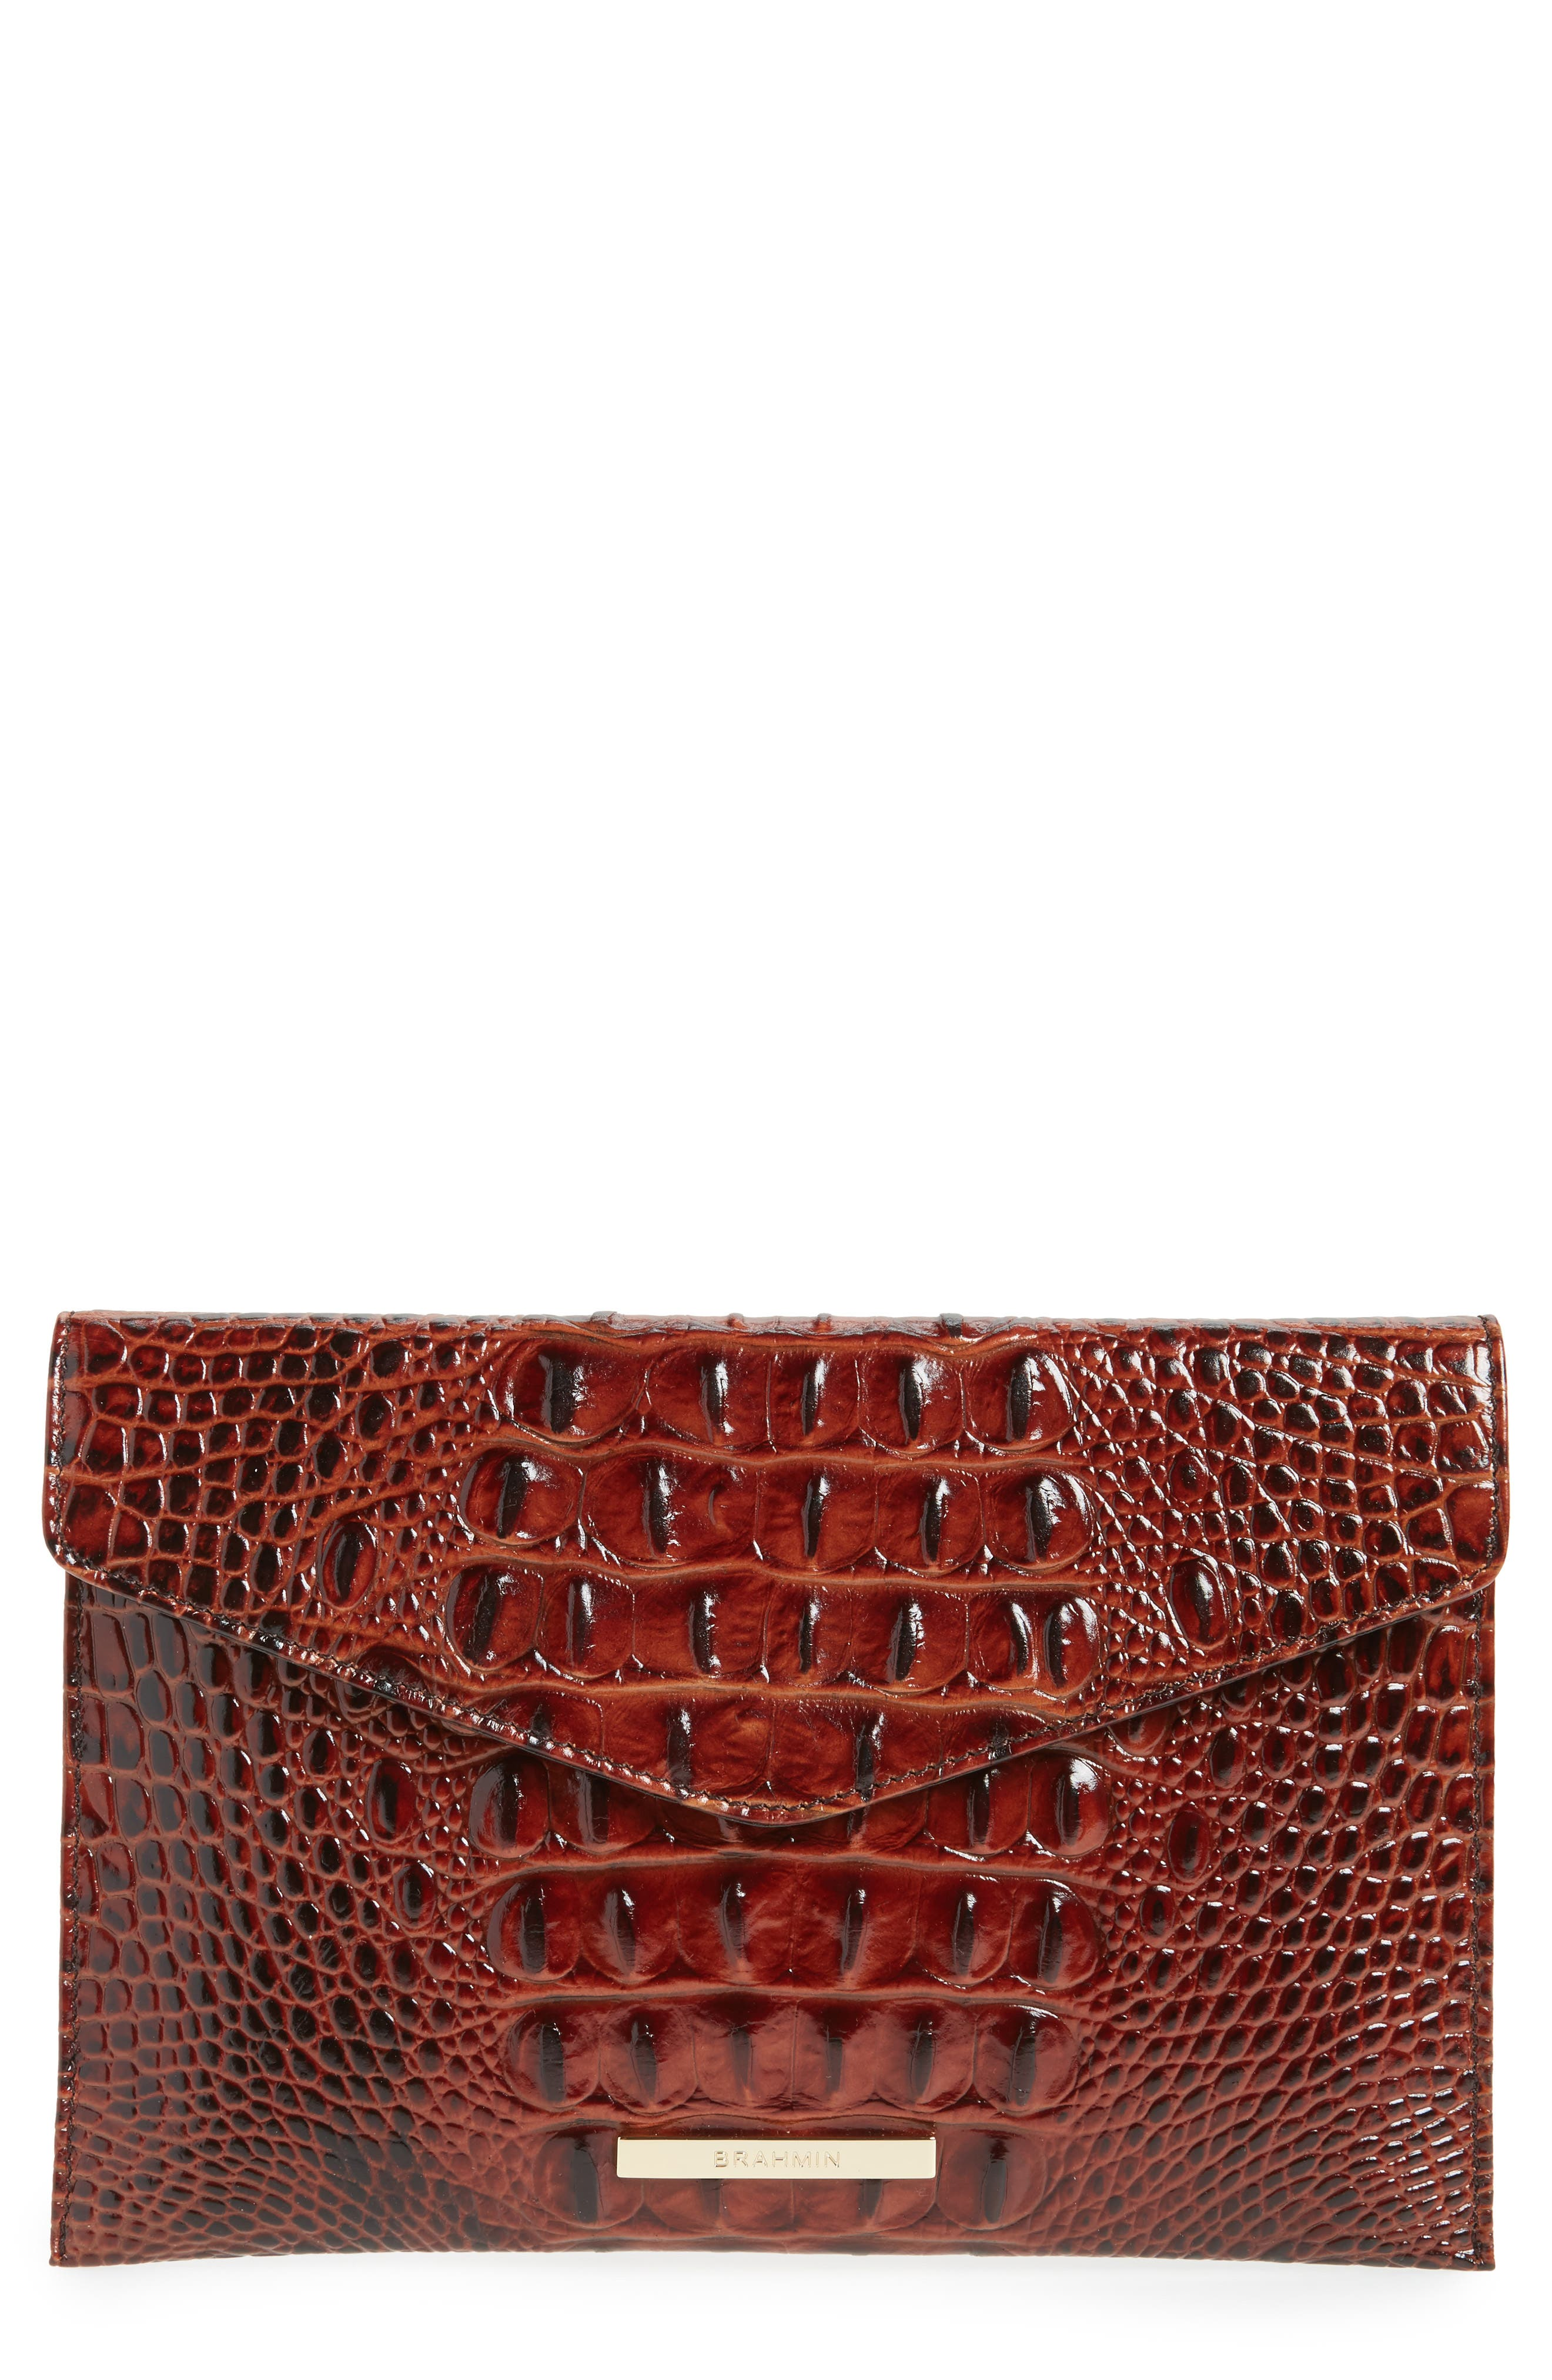 Main Image - Brahmin Melbourne Croc Embossed Leather Envelope Clutch